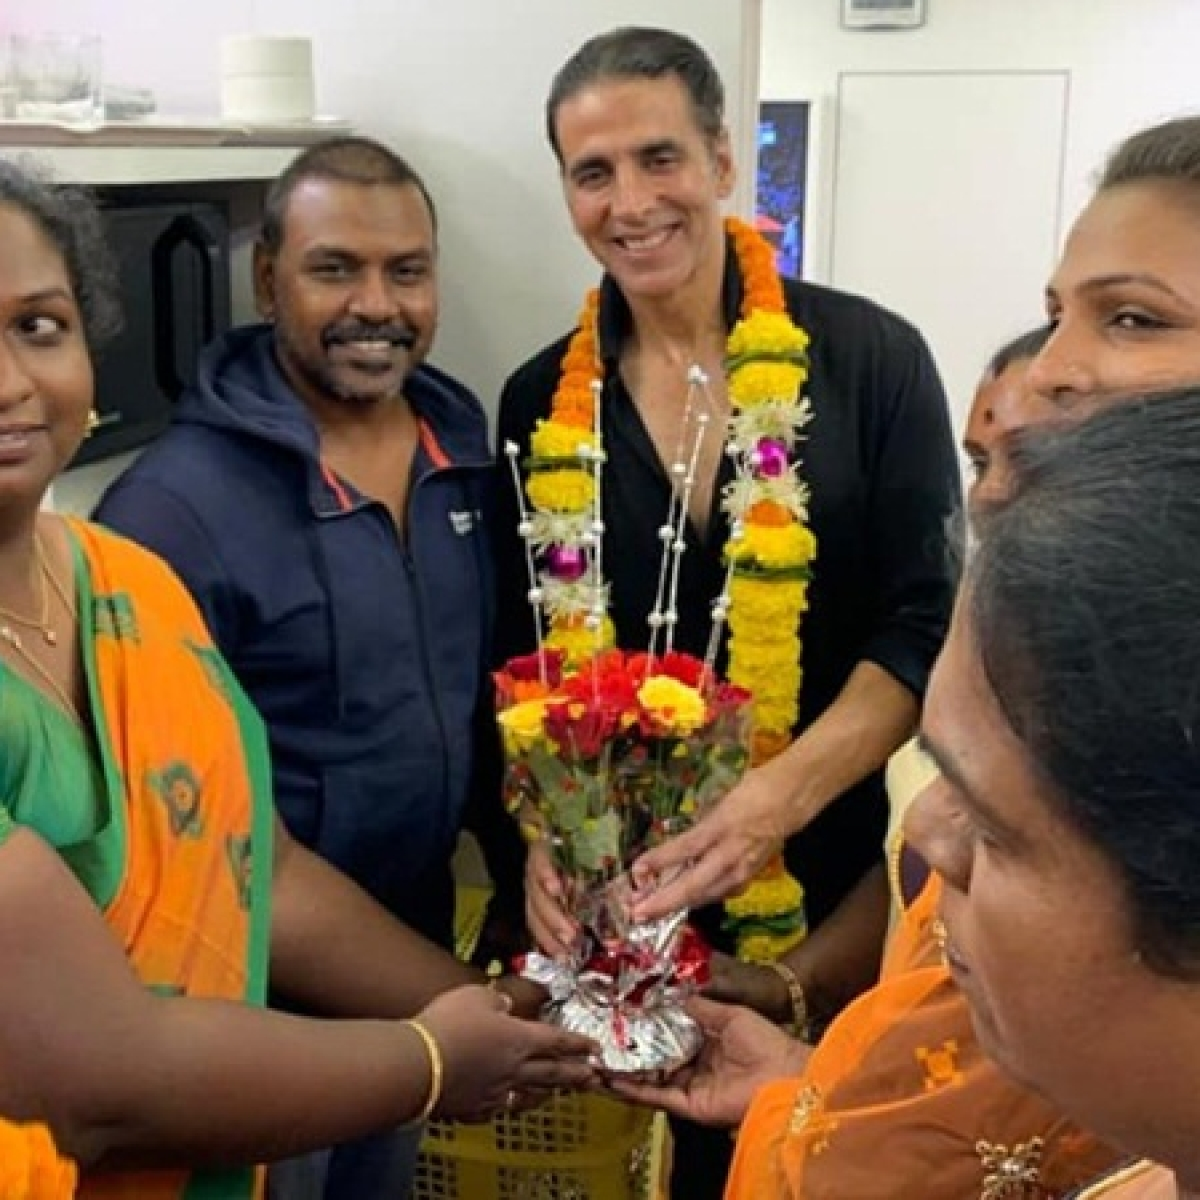 'Just for movie promotion': Akshay Kumar's Rs 1.5 cr donation for transgender home gets mixed reactions